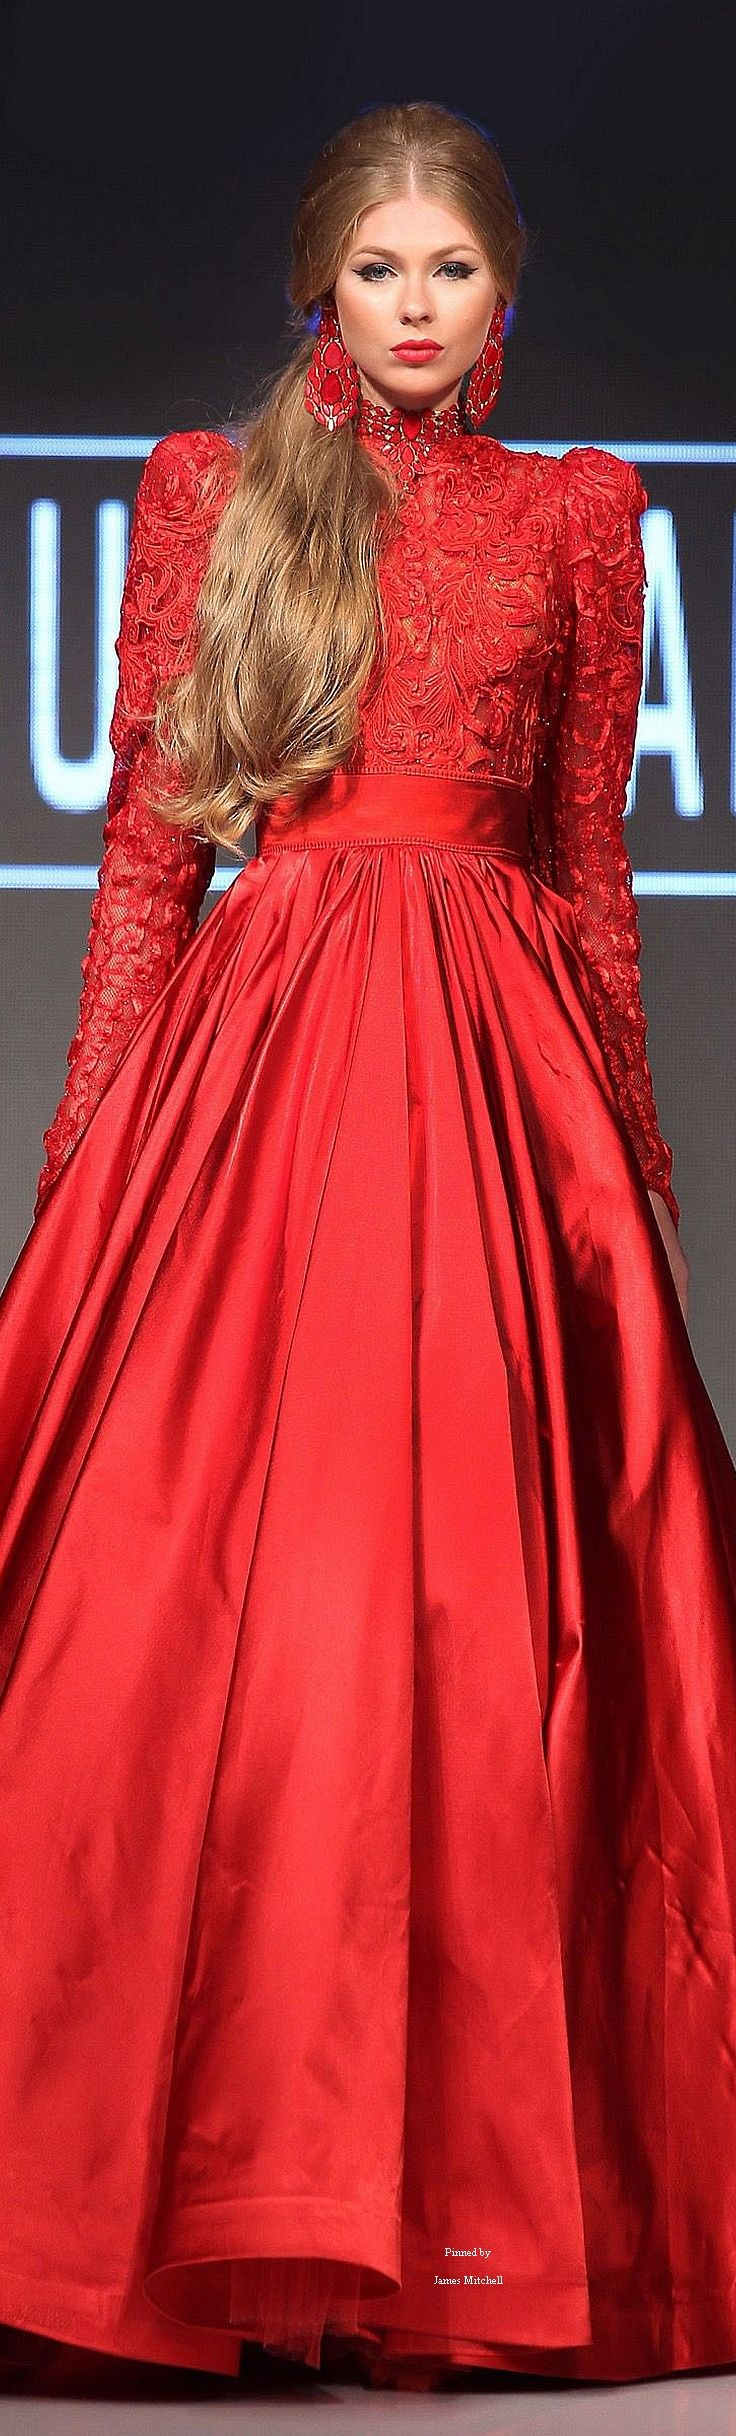 Fouad Sarkis Collection Ready to Wear Spring-summer 2016: